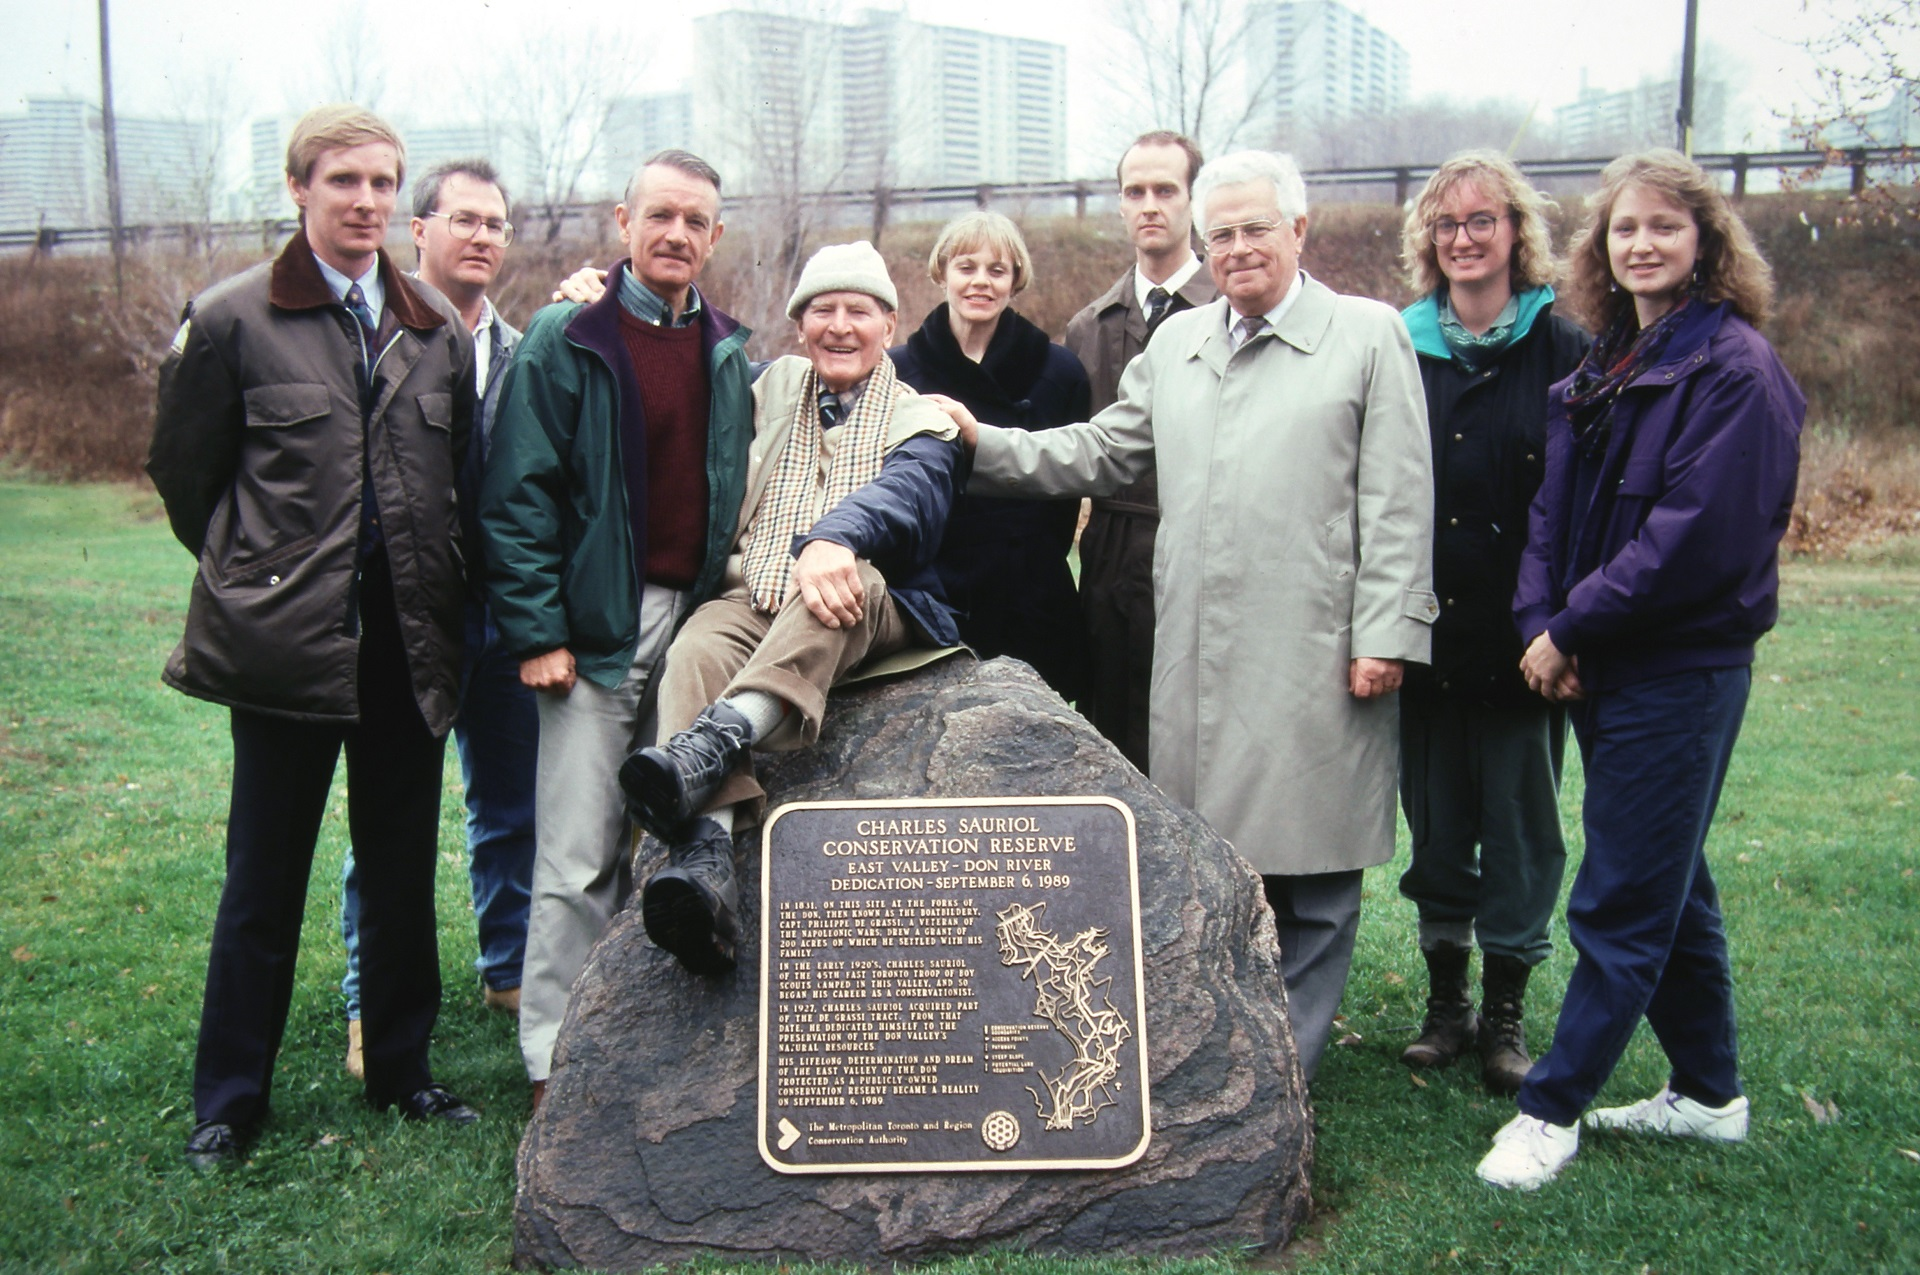 Charles Sauriol poses with the plaque bearing his name at the Charles Sauriol Conservation Reserve in 1989